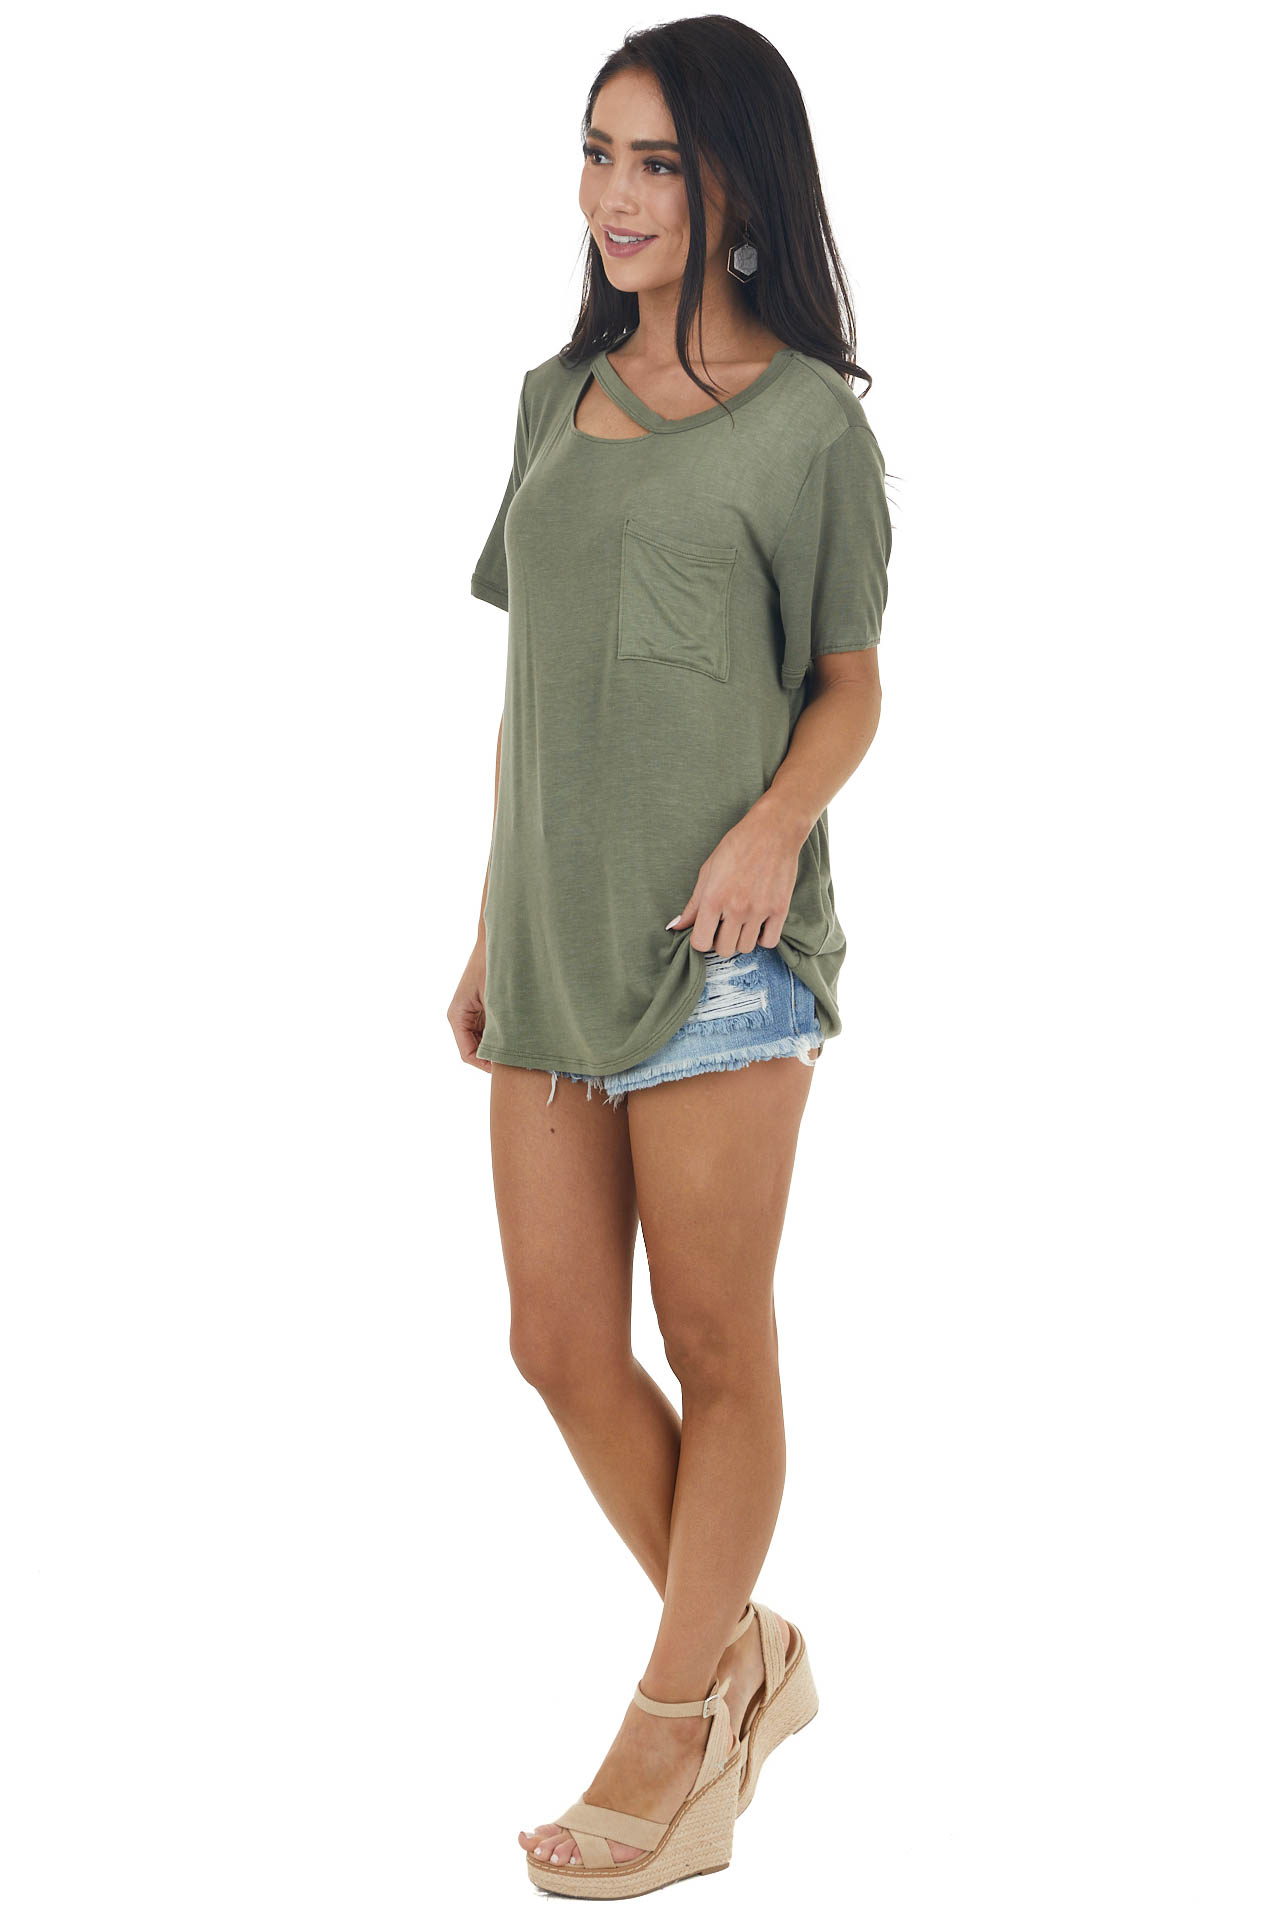 Faded Olive Short Sleeve Cut Out Knit Tee with Chest Pocket